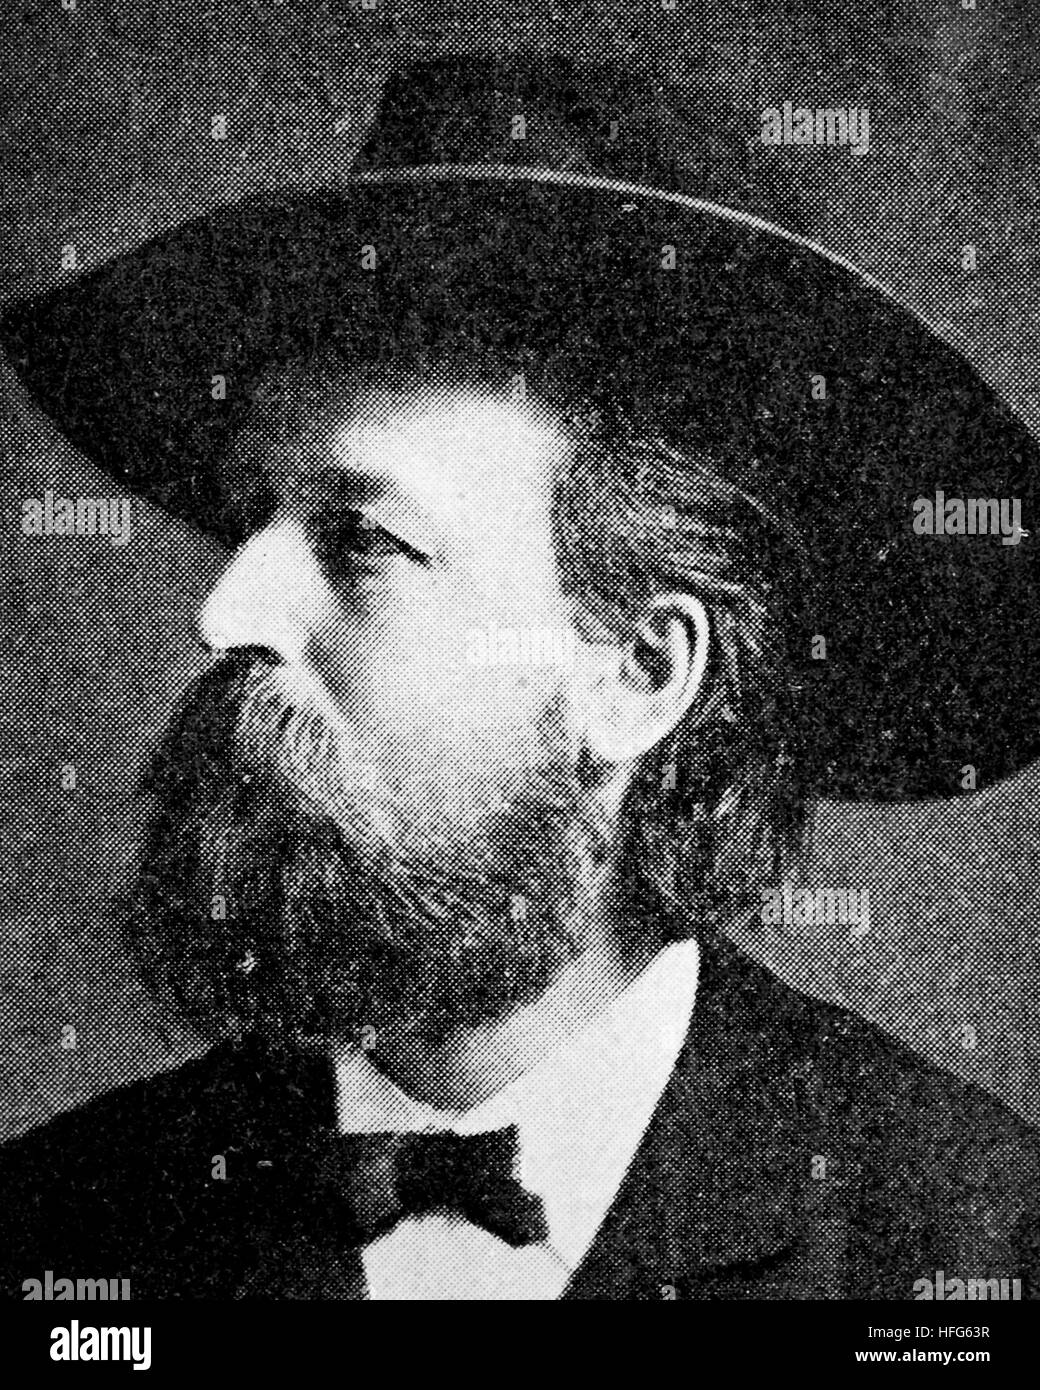 Ernst Scherenberg, 1839 - 1905, Was a German lyric poet, reproduction photo from the year 1895, digital improved - Stock Image